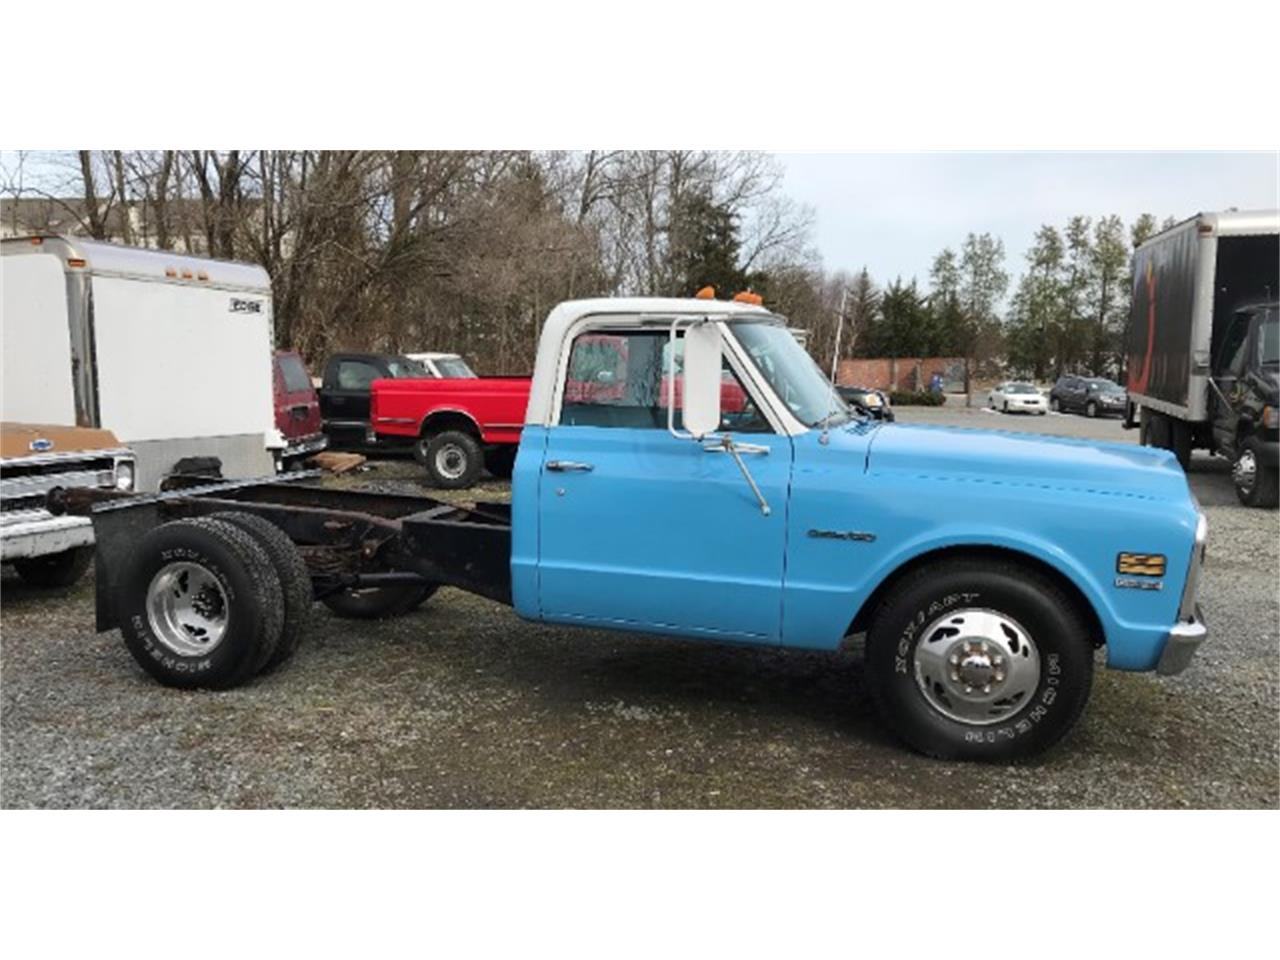 1971 Chevrolet 1 Ton Truck for sale in Harpers Ferry, WV – photo 2